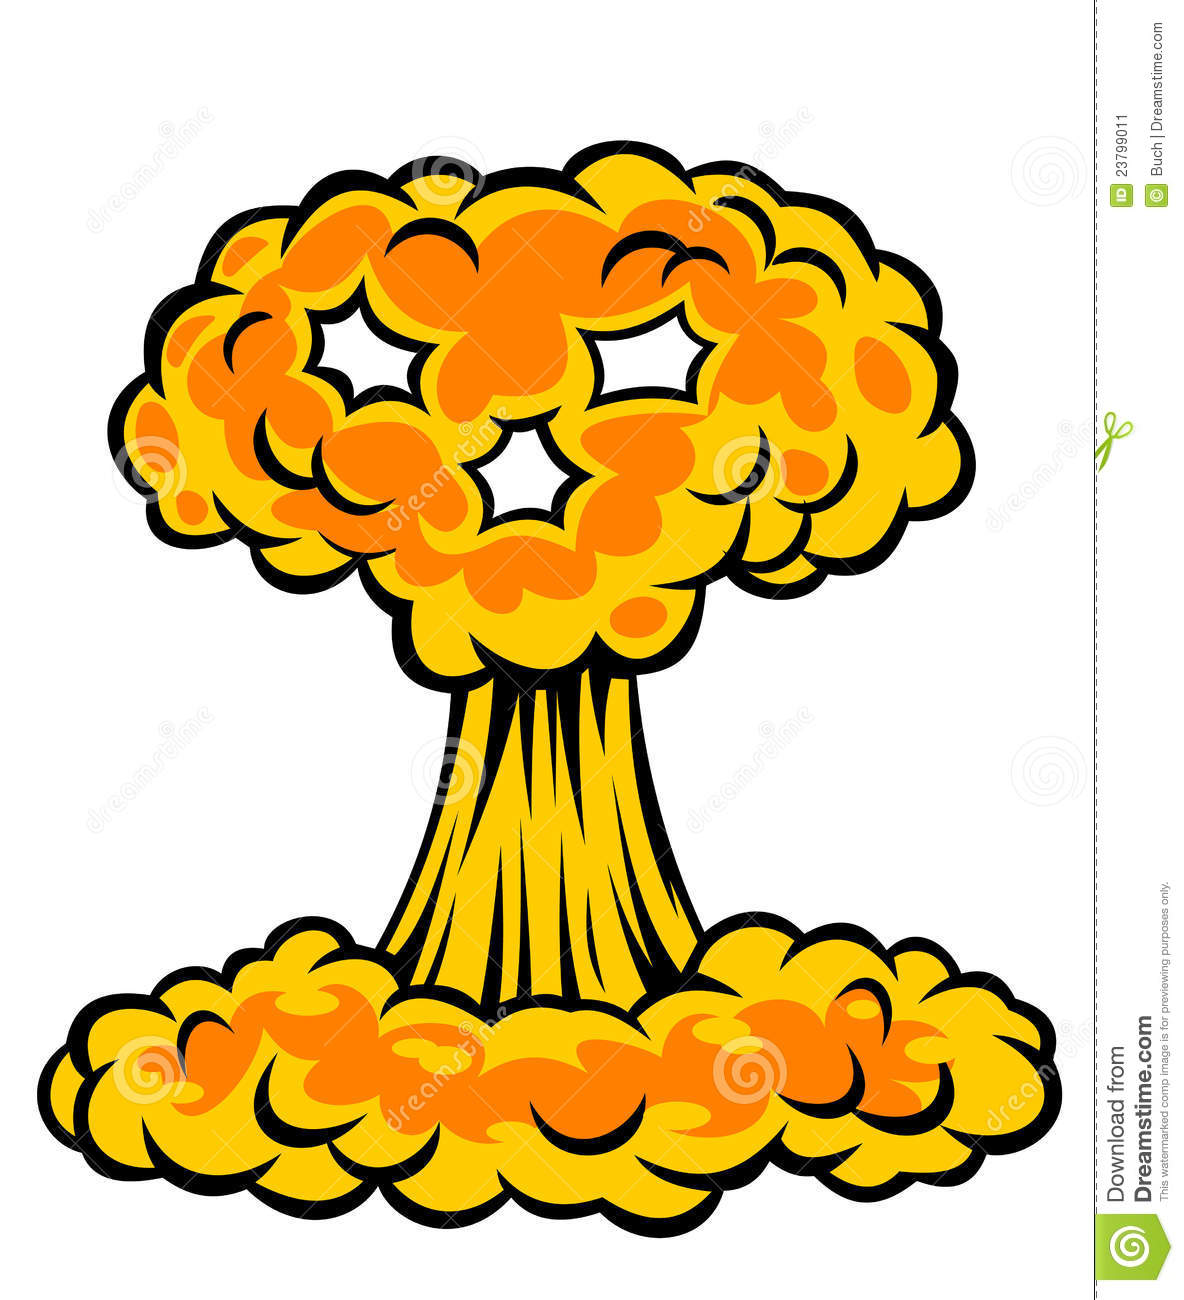 Displaying (16) Gallery Images For Nuclear Mushroom Cloud Clip Art...